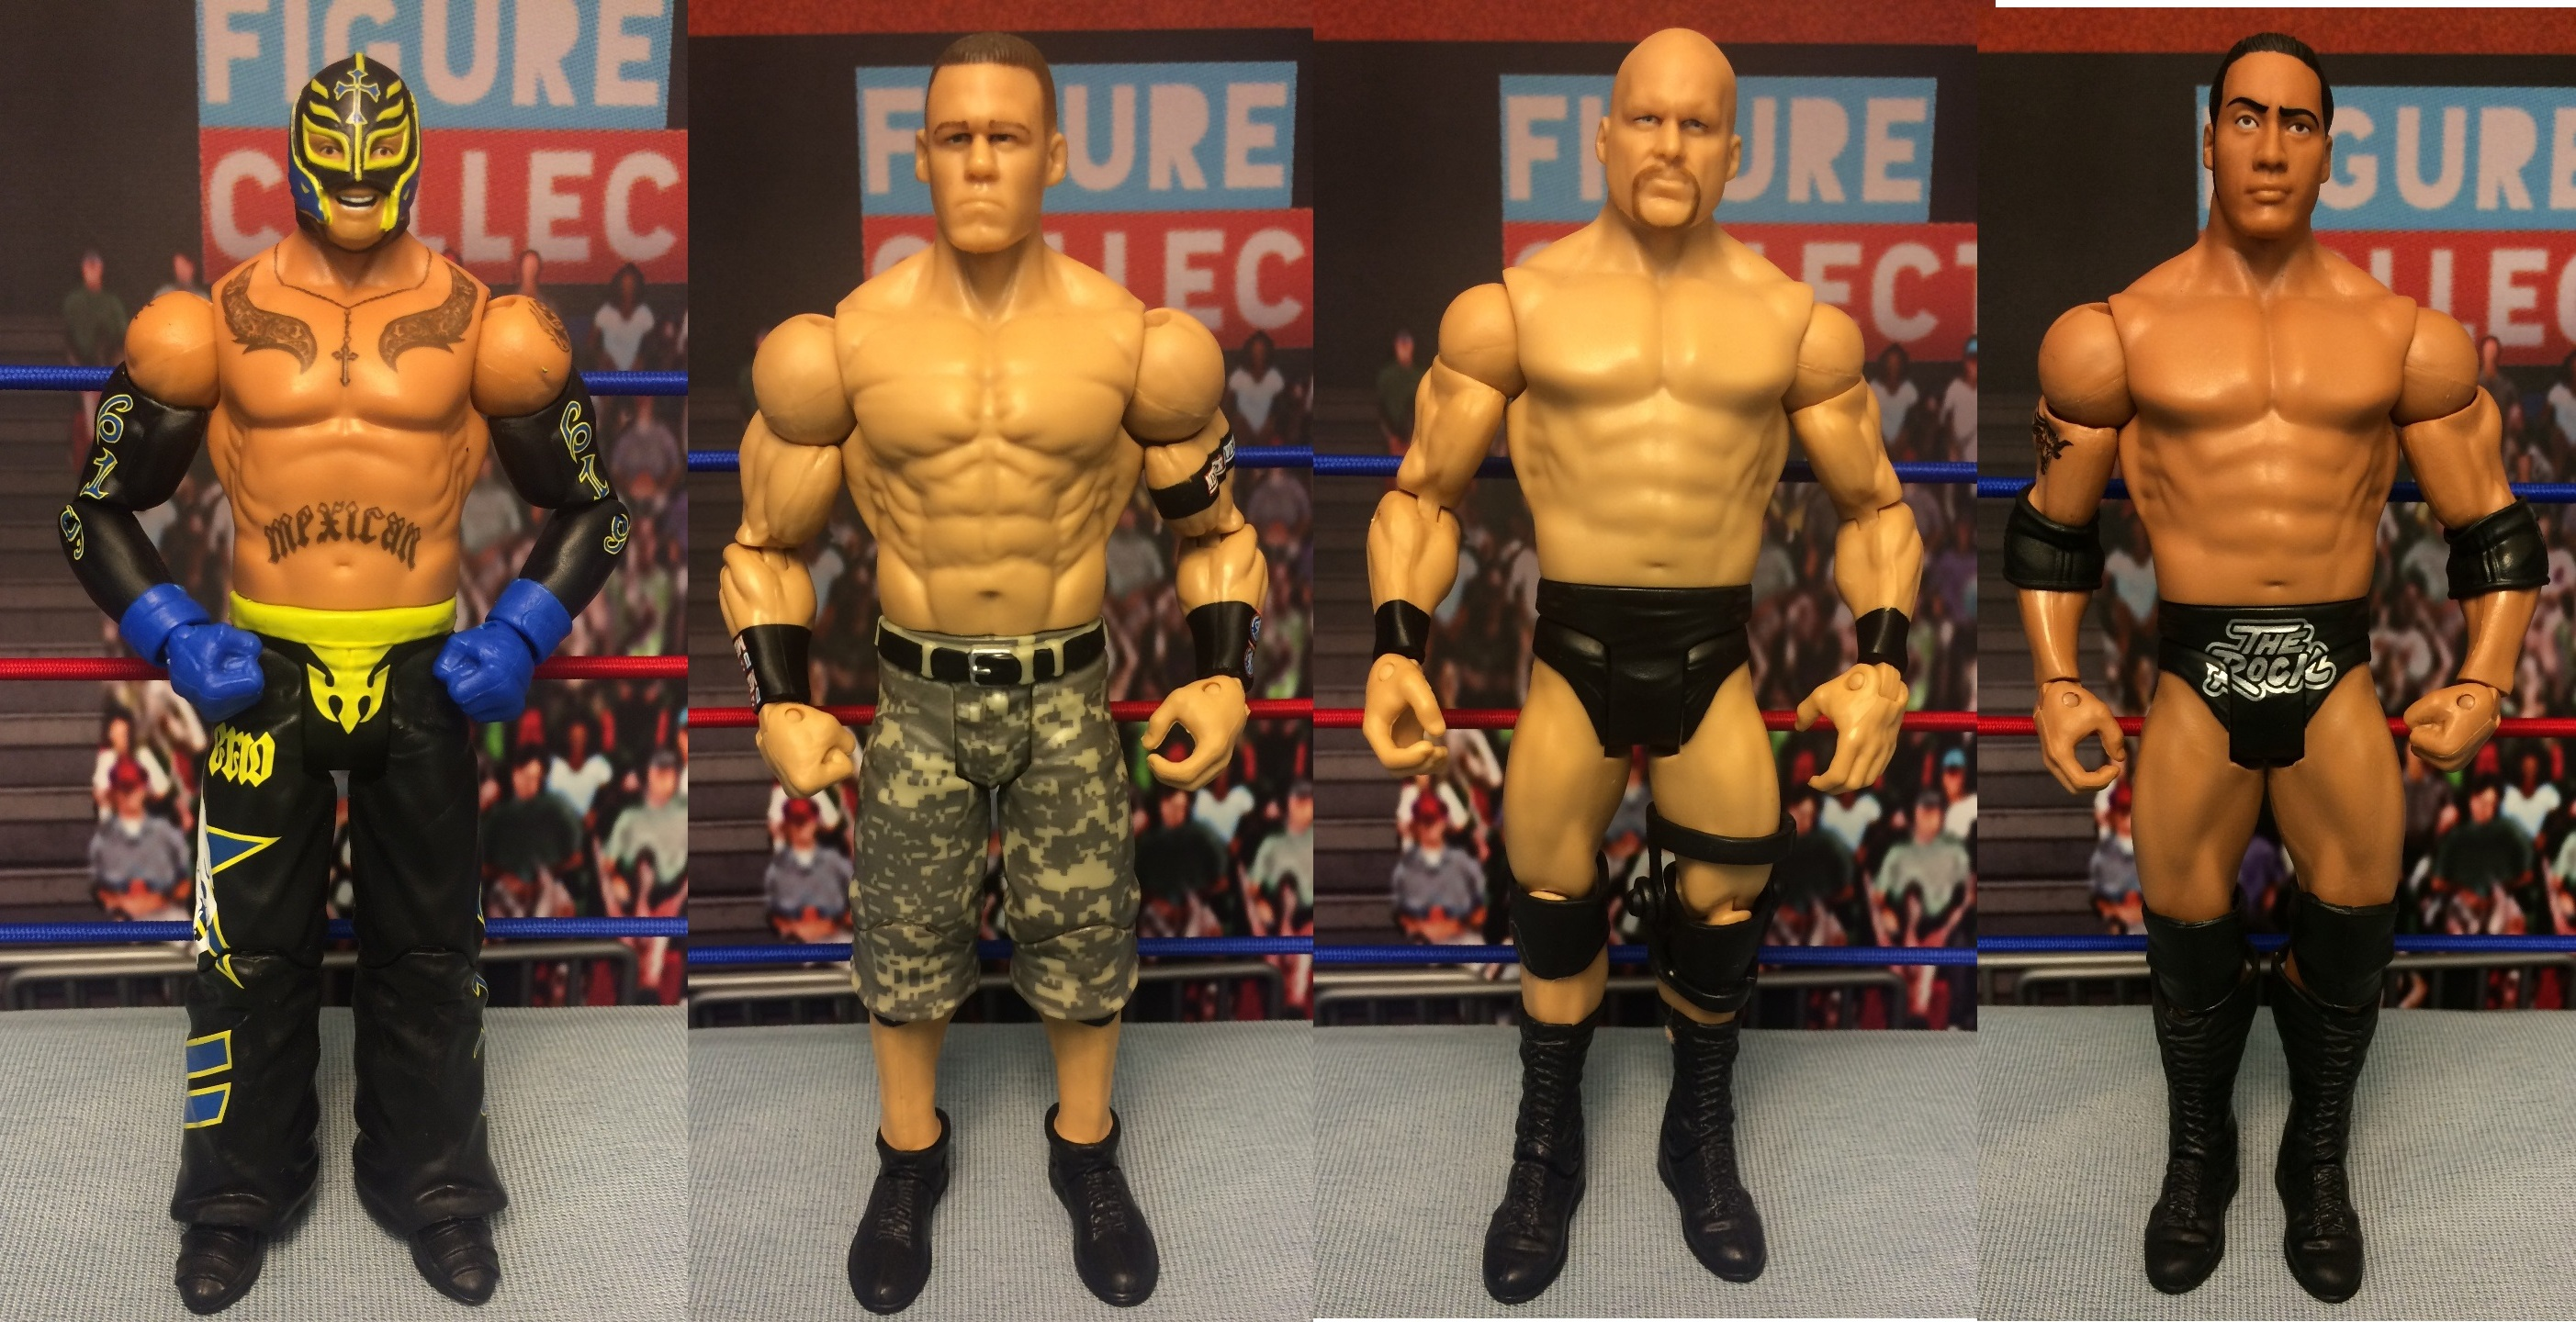 Champion Collection: Rey Mysterio, The Rock, John Cena, Steve Austin